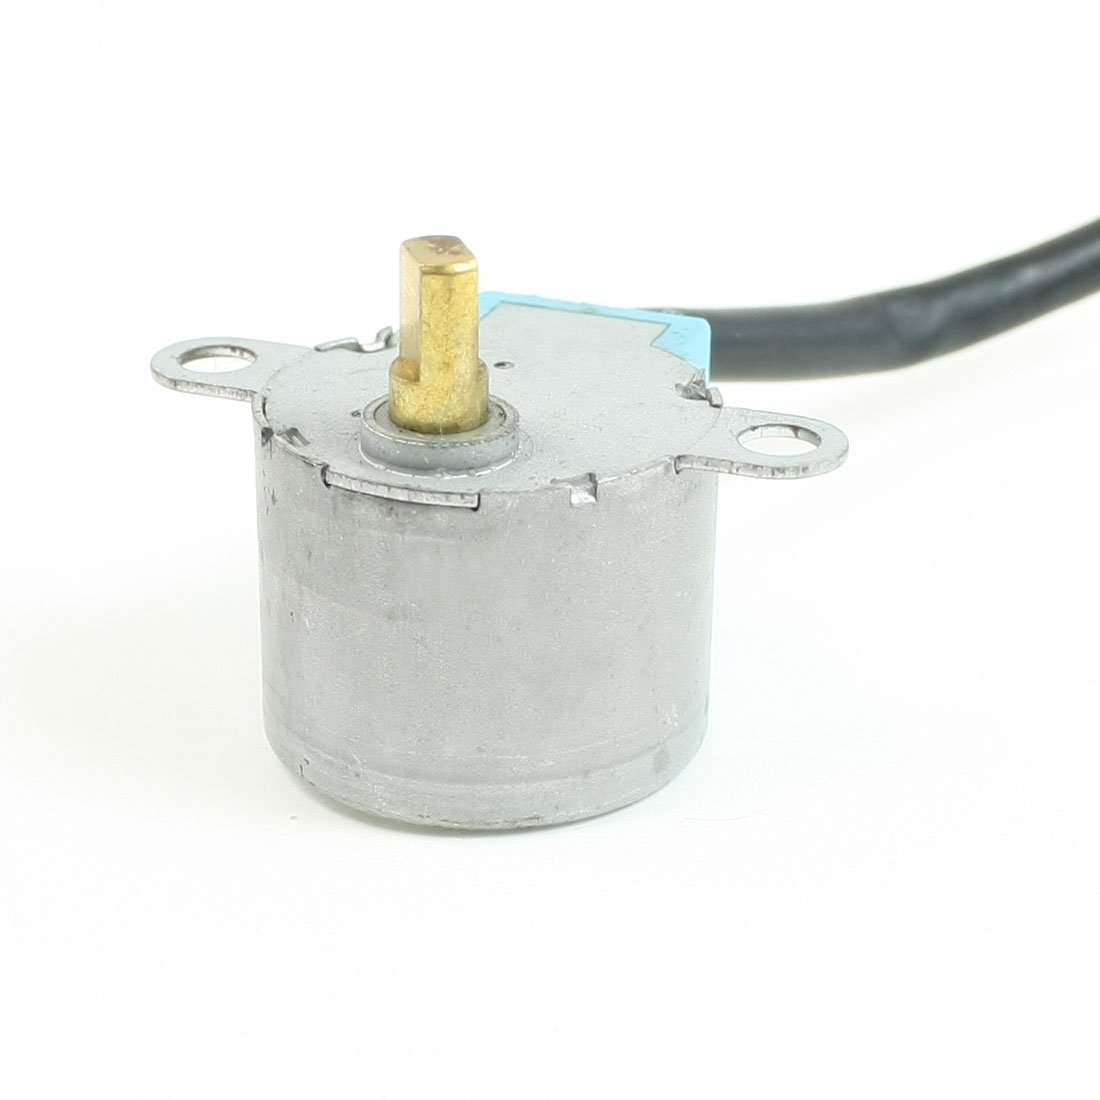 DC 12V 24RPM 50Hz CW/CCW 5mm Shaft Conditioner Fan Synchronous Motor